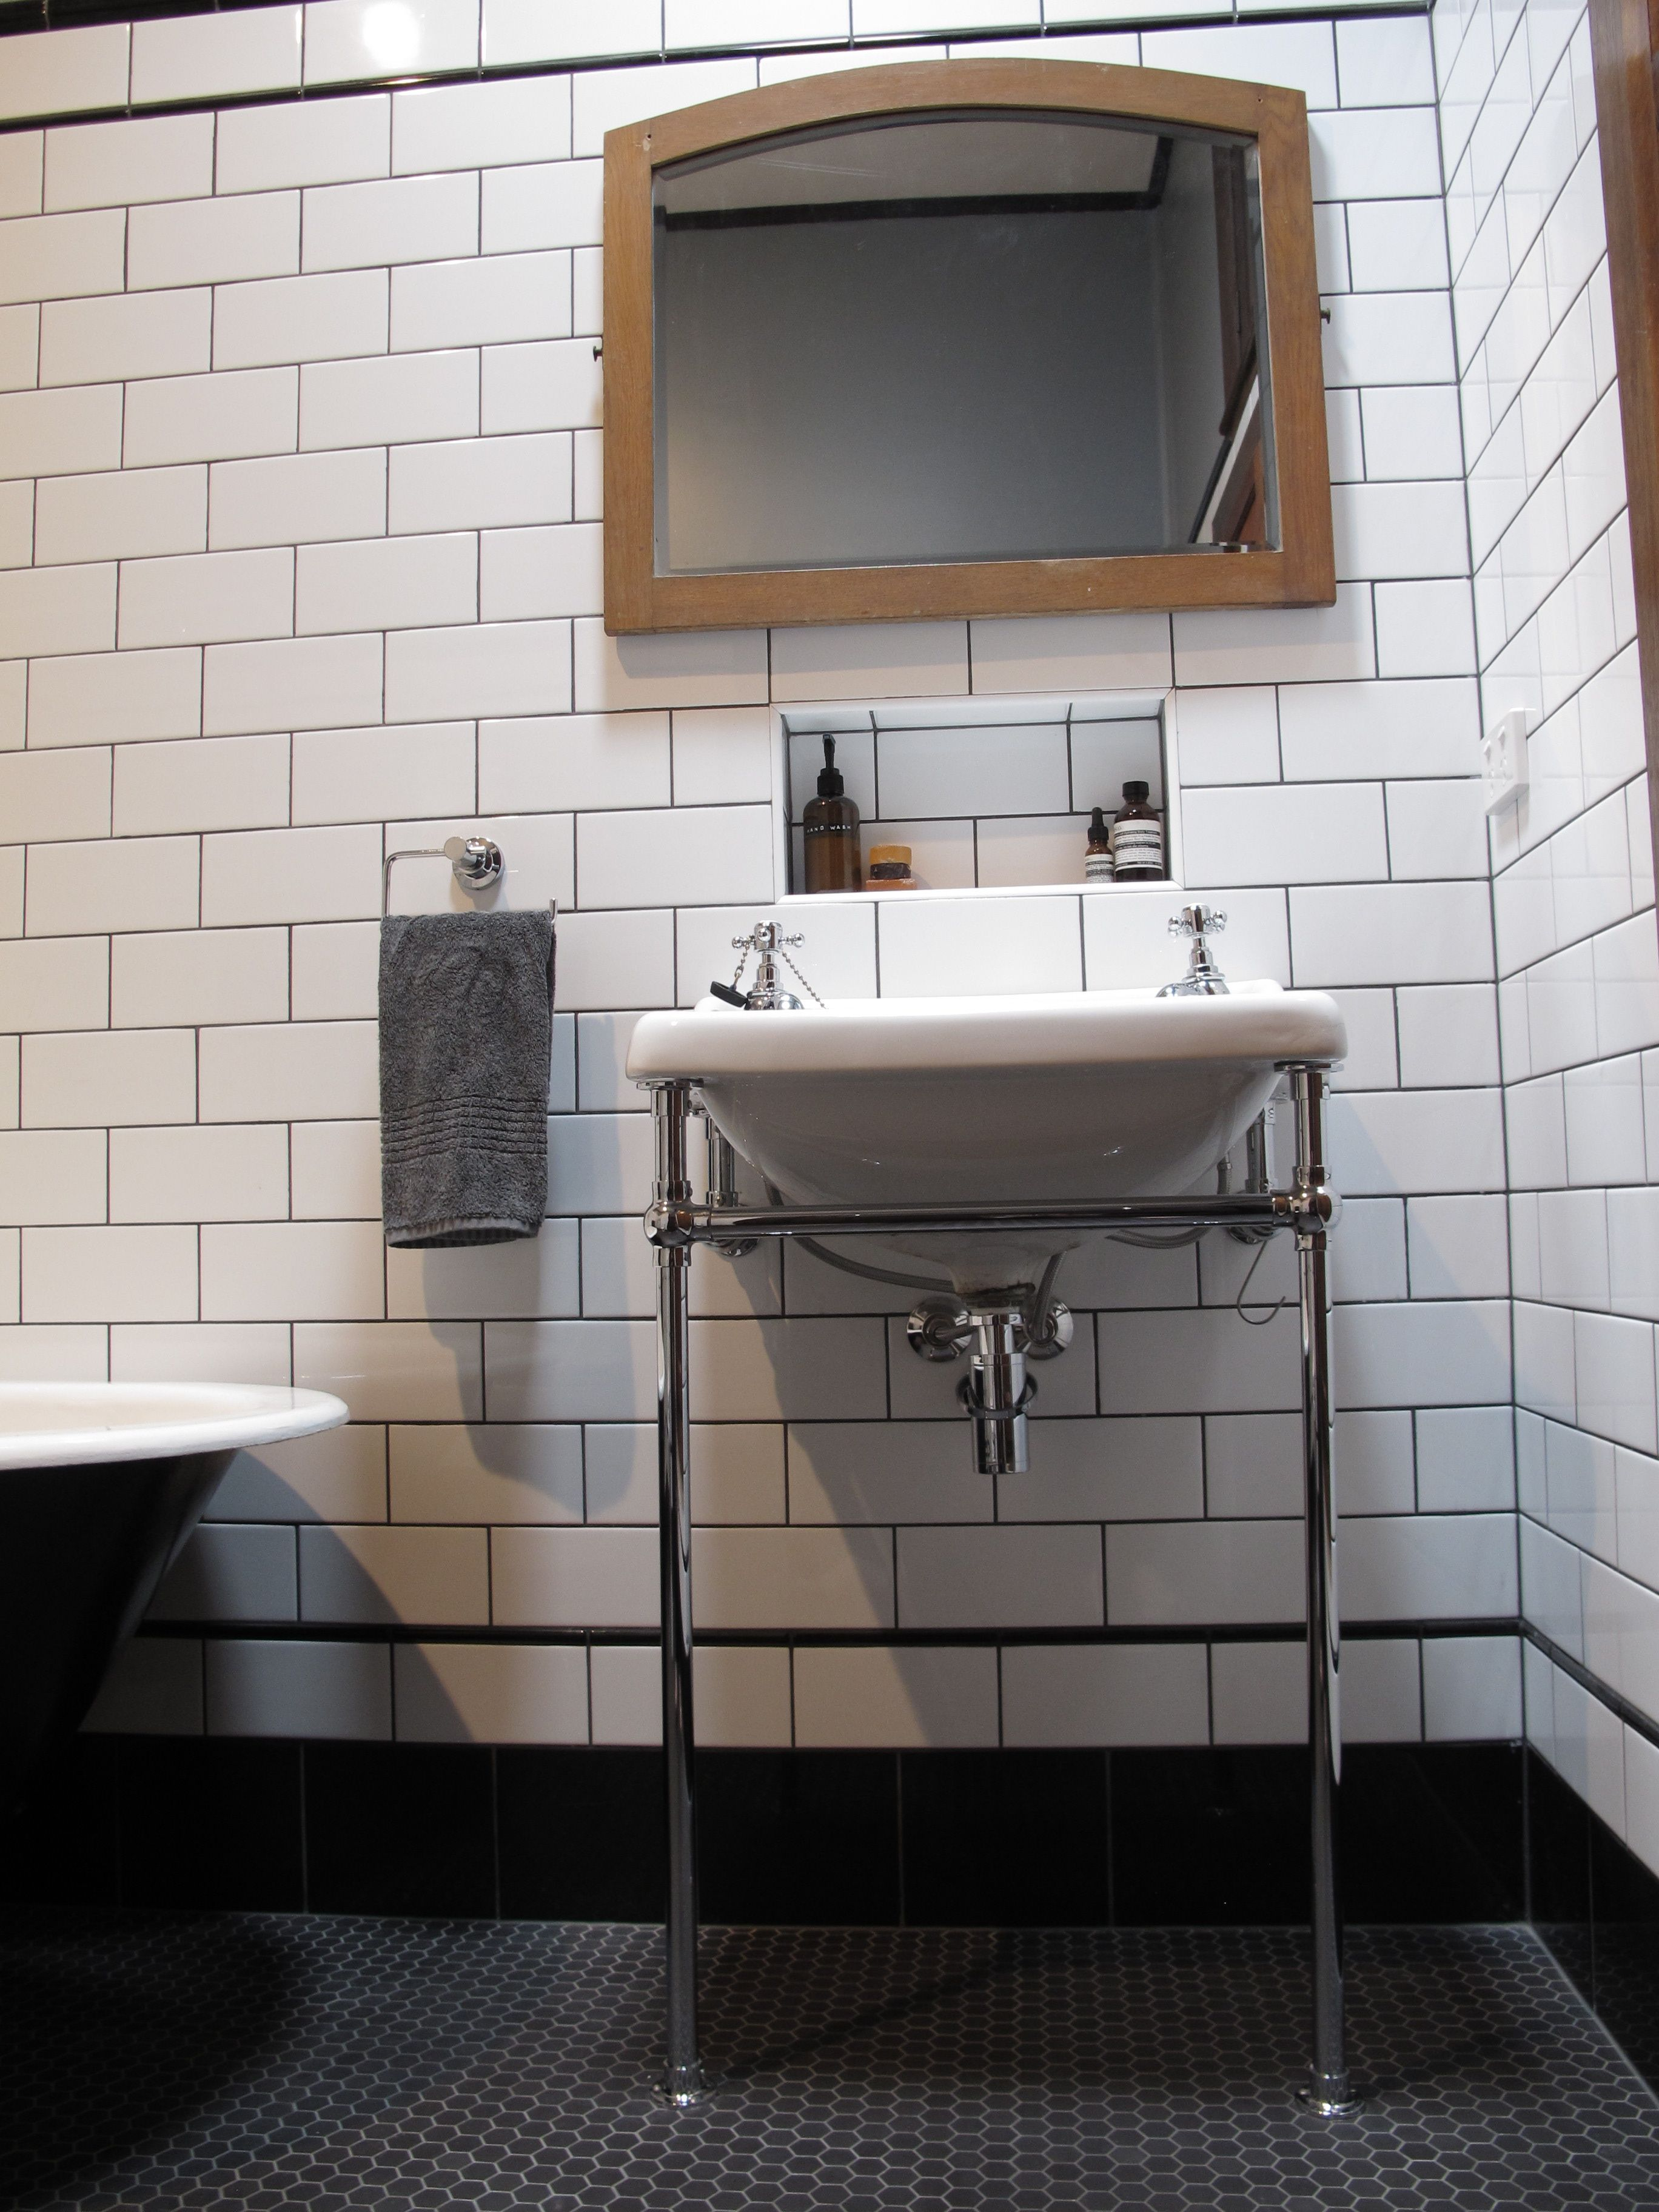 Subway Tiles Black Border And Pencil Grey Grout Charcoal Hexagonal Mosaic Floor From Olde English Original Basin The House On